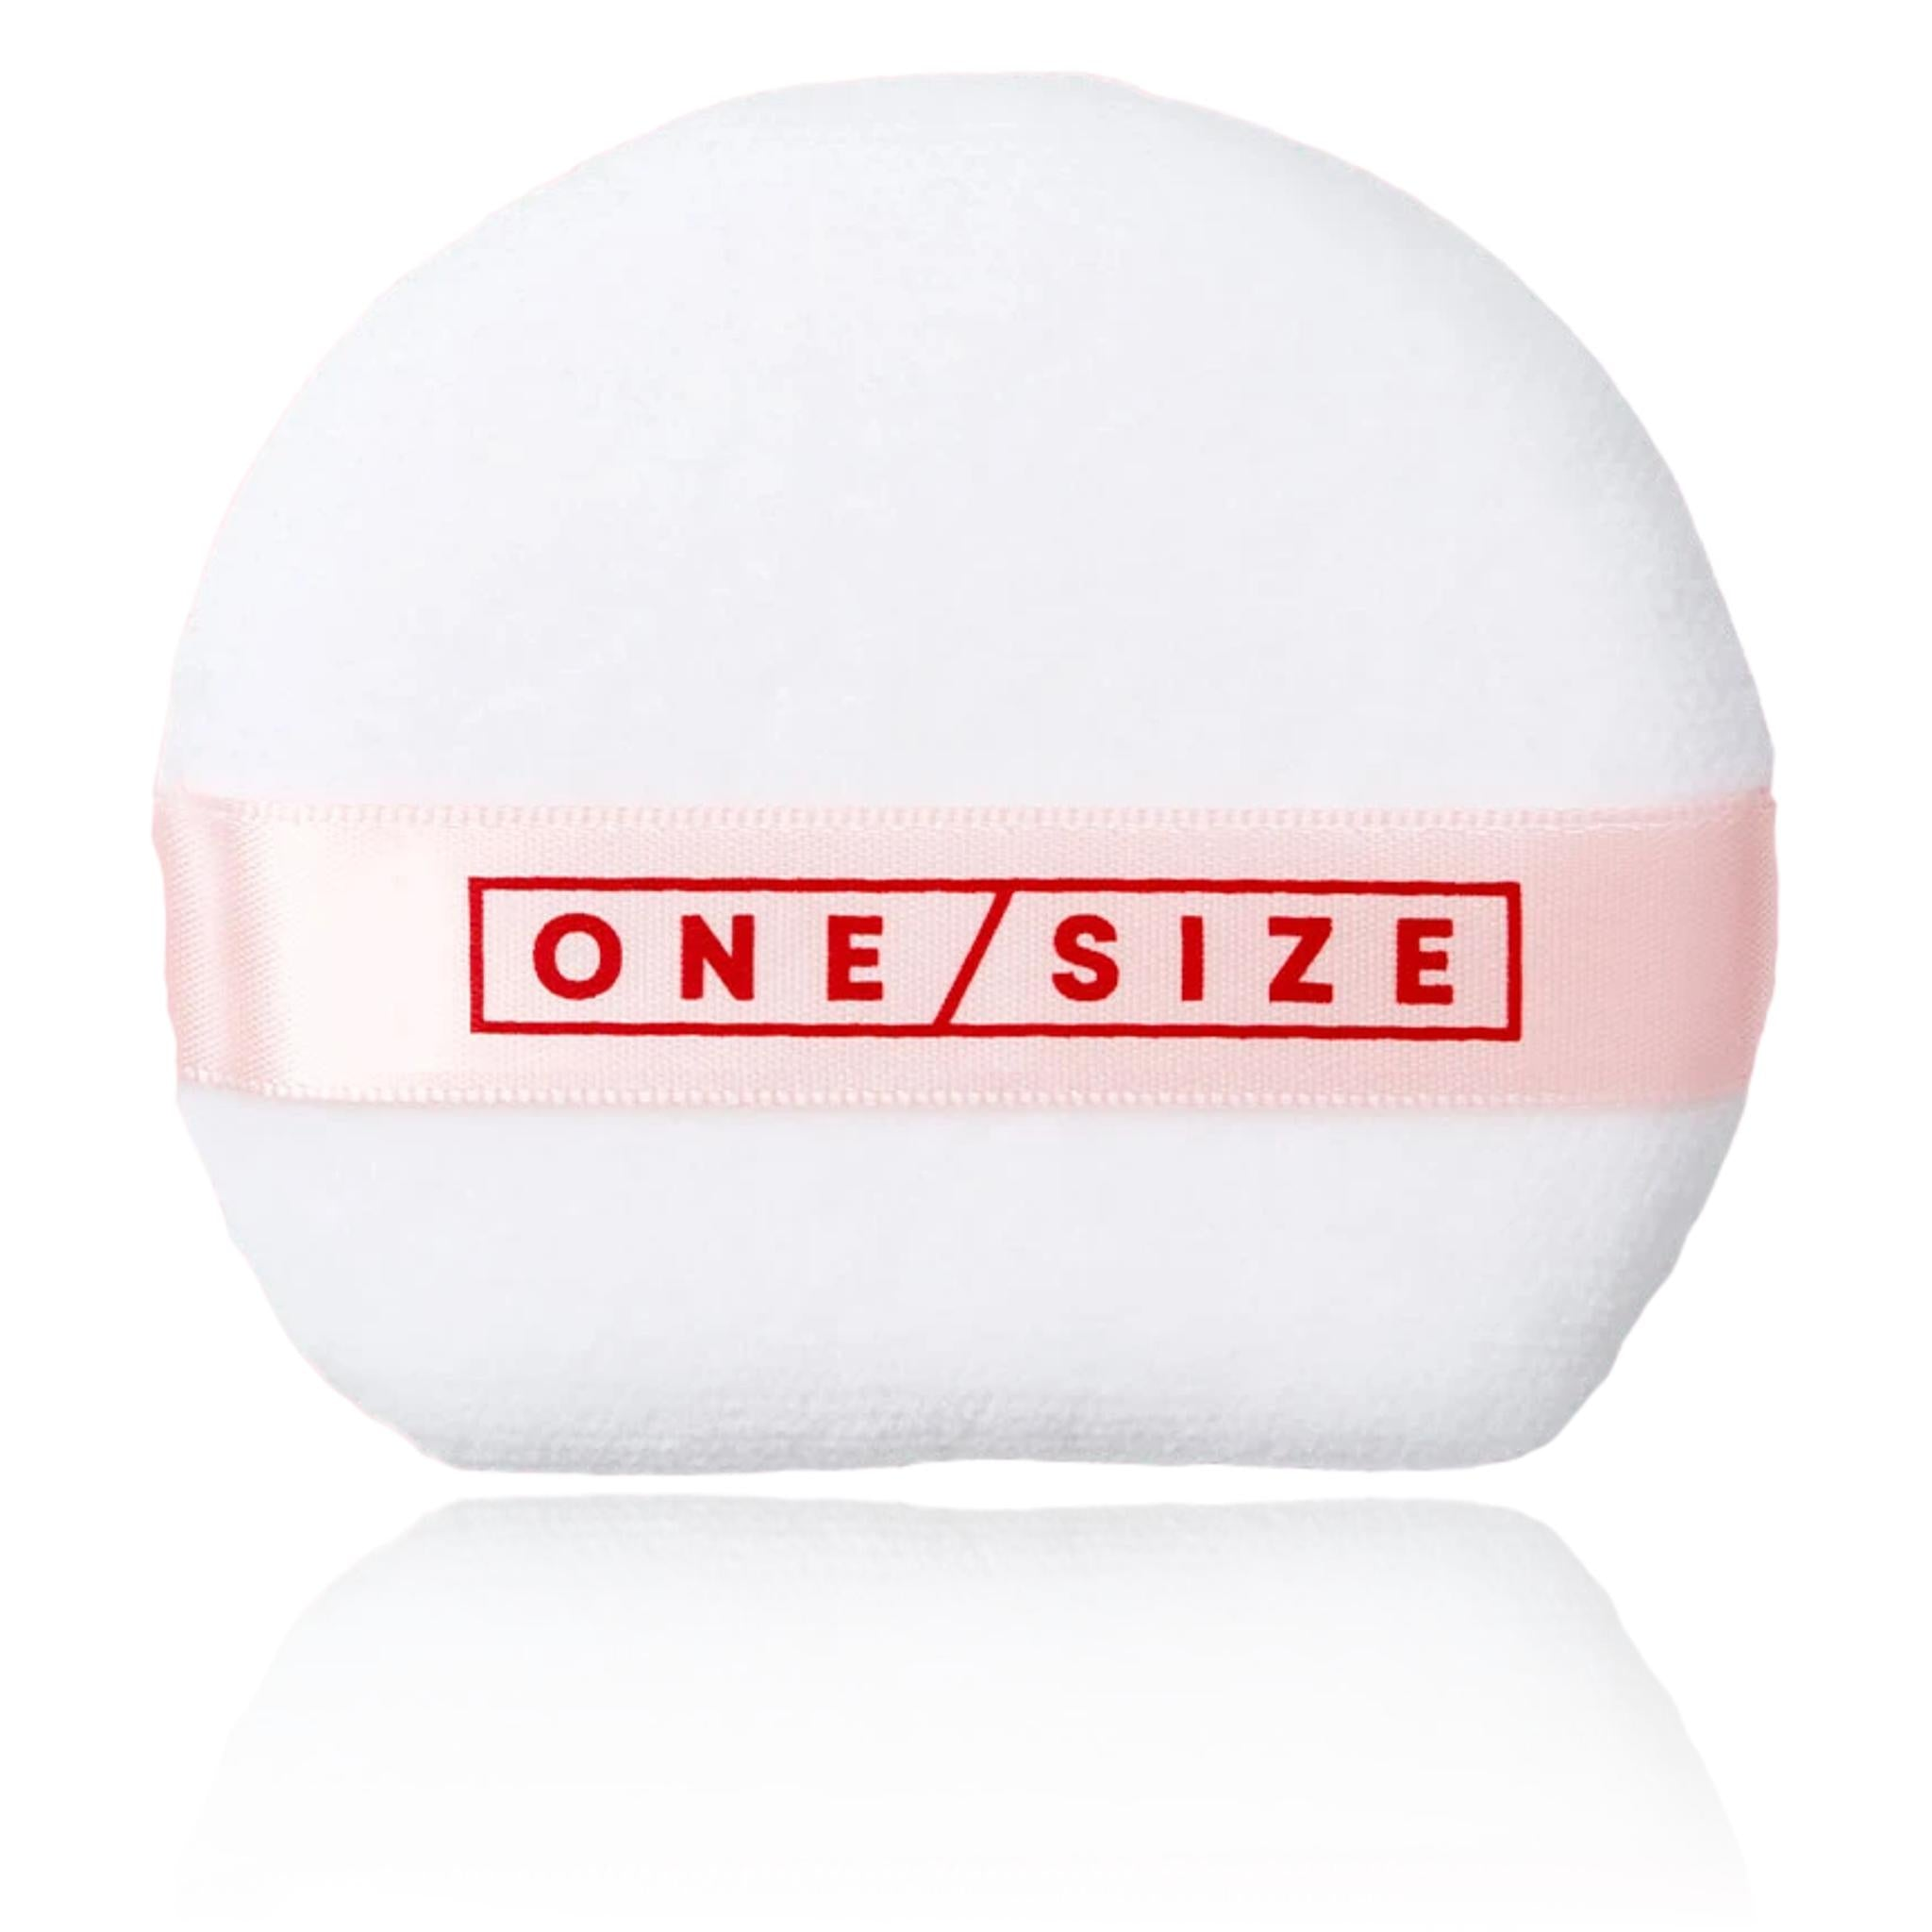 ONE/SIZE BY PATRICK STARRR Ultimate Setting & Baking Puff